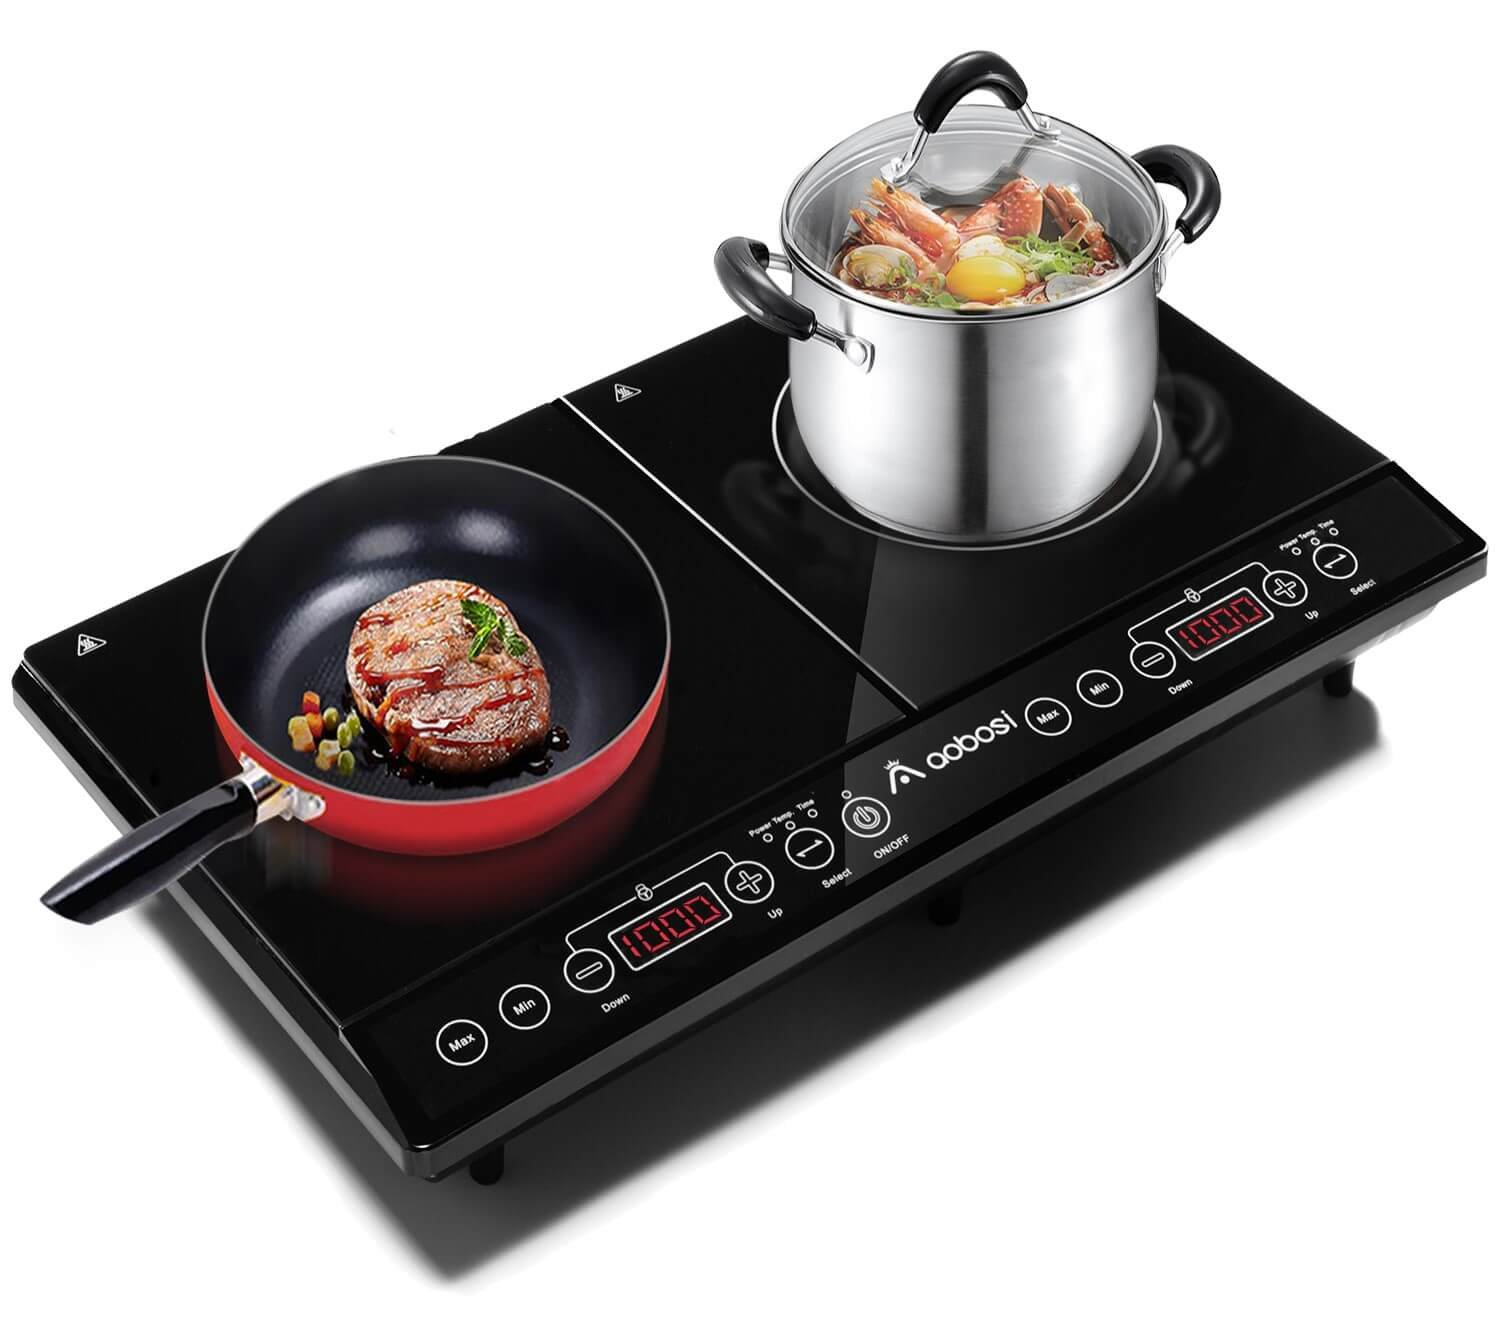 Aobosi Double Induction Hob, 2800w, Portable Digital Electric Cooker, Sensor Touch Control,Crystal Glass plate Qingzhou